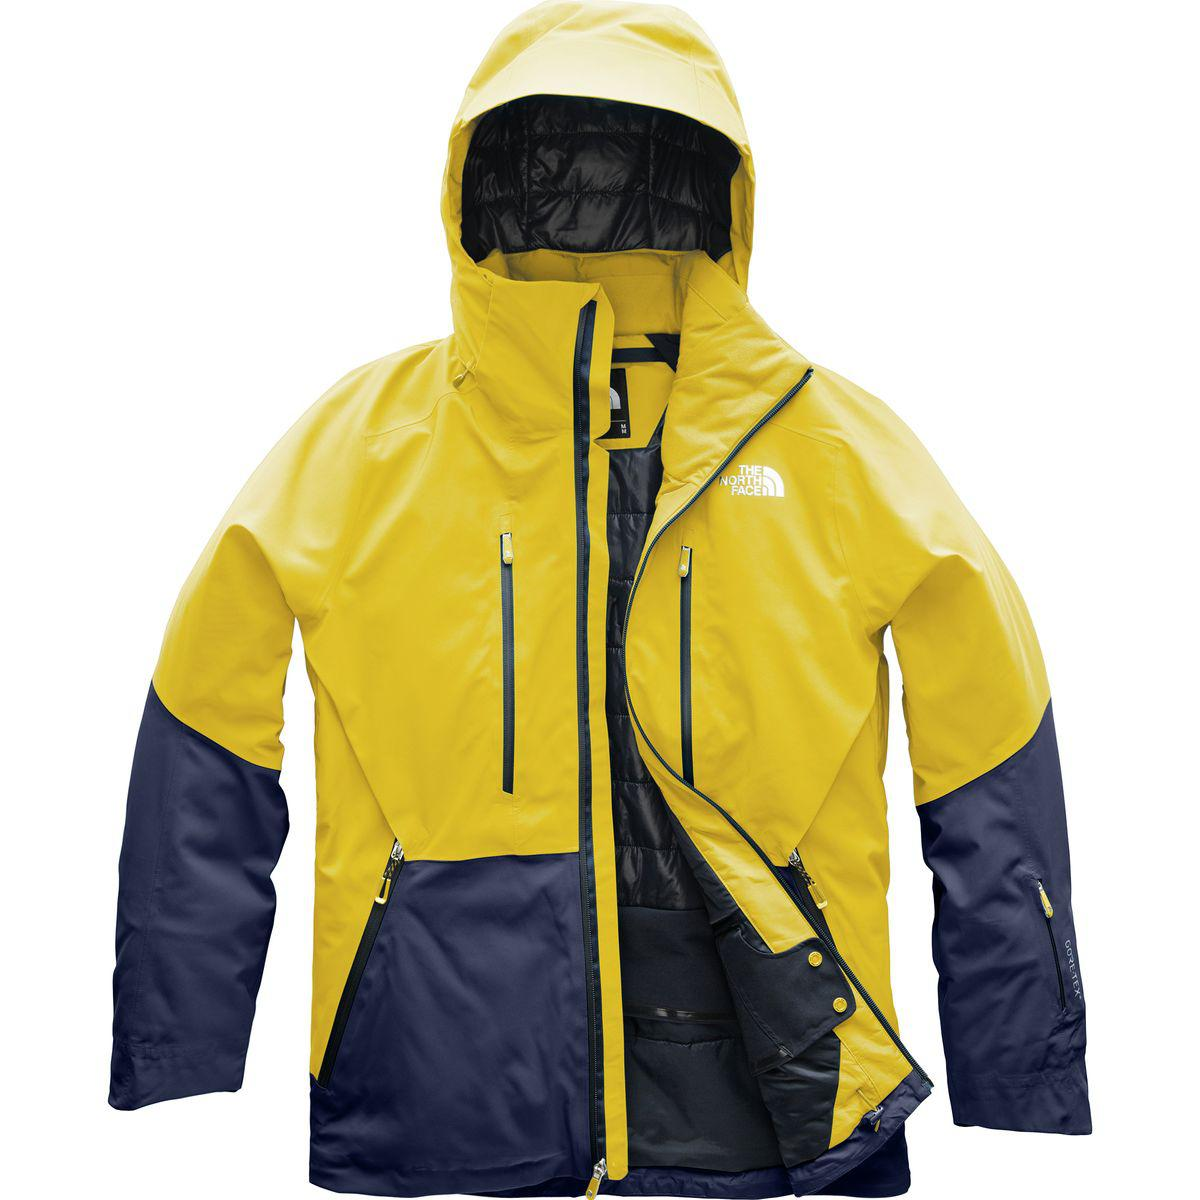 fa7fa110e1 Lyst - The North Face Anonym Hooded Jacket in Yellow for Men